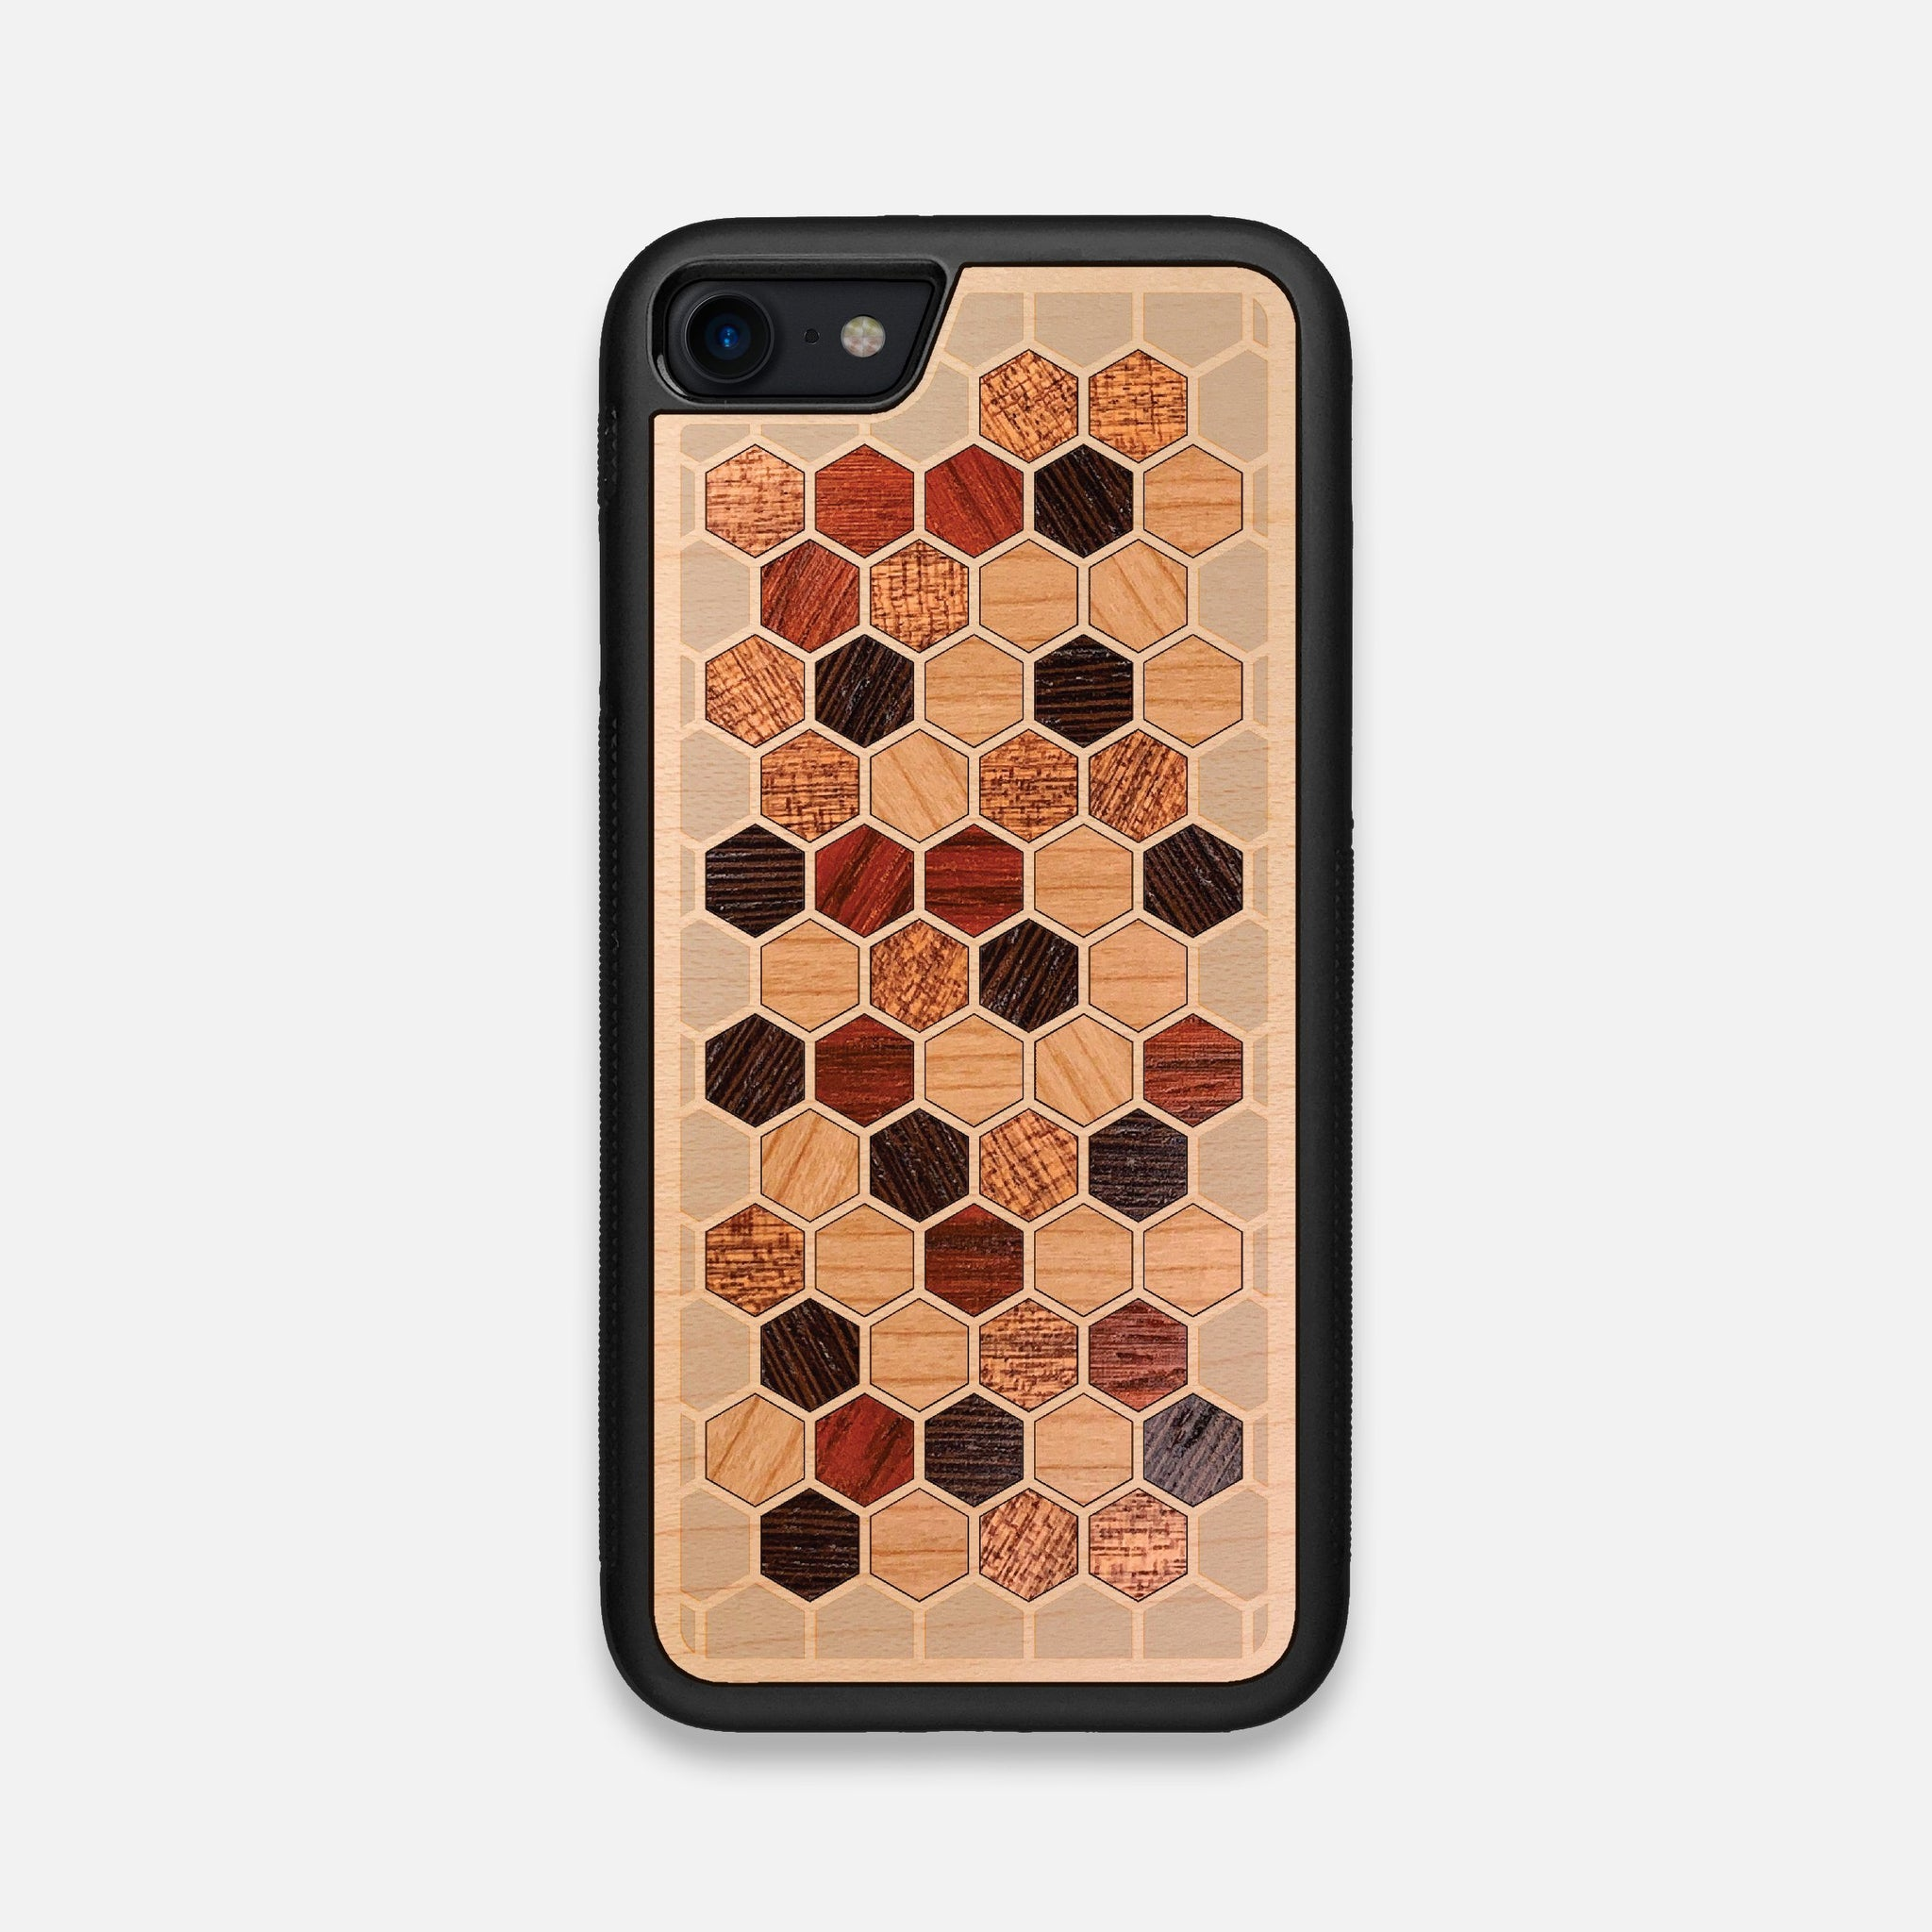 Front view of the Cellular Maple Wood iPhone 7/8 Case by Keyway Designs